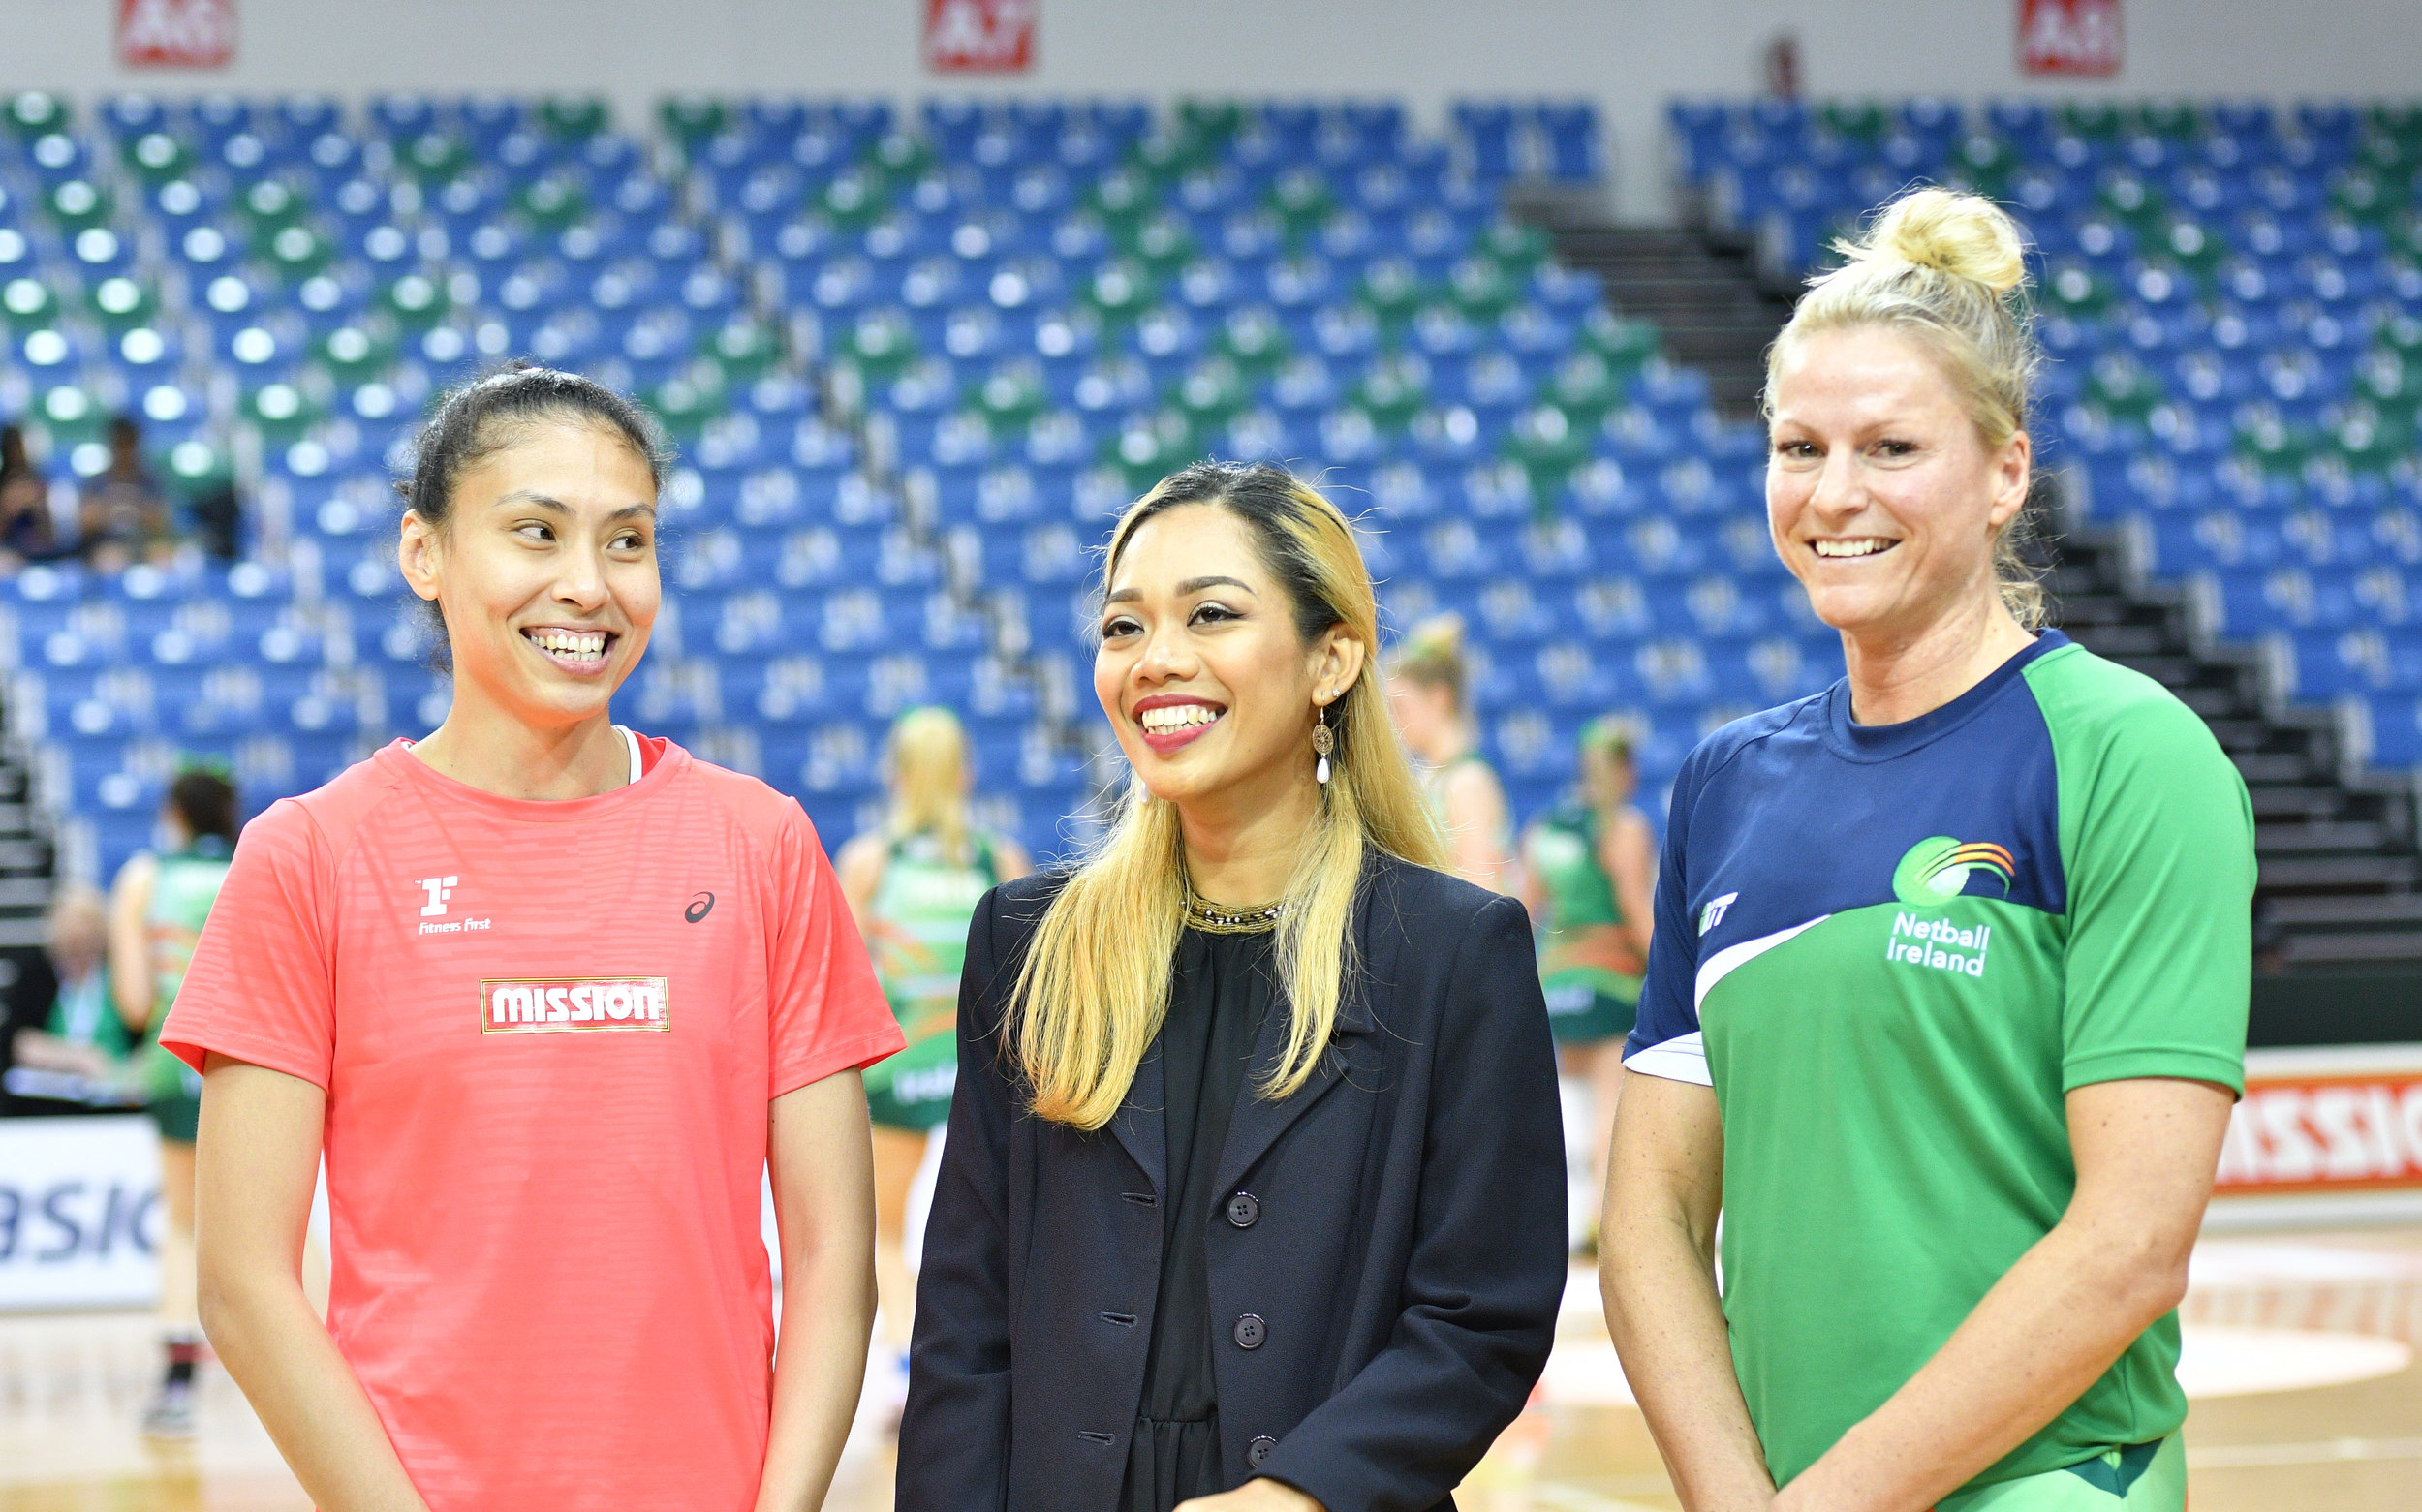 The 2 Team Captains, taking center stage for a quick chat before the game. Vanessa Maria Lee(in red) - Team Singapore Kristy Owens(in green) - Team Ireland